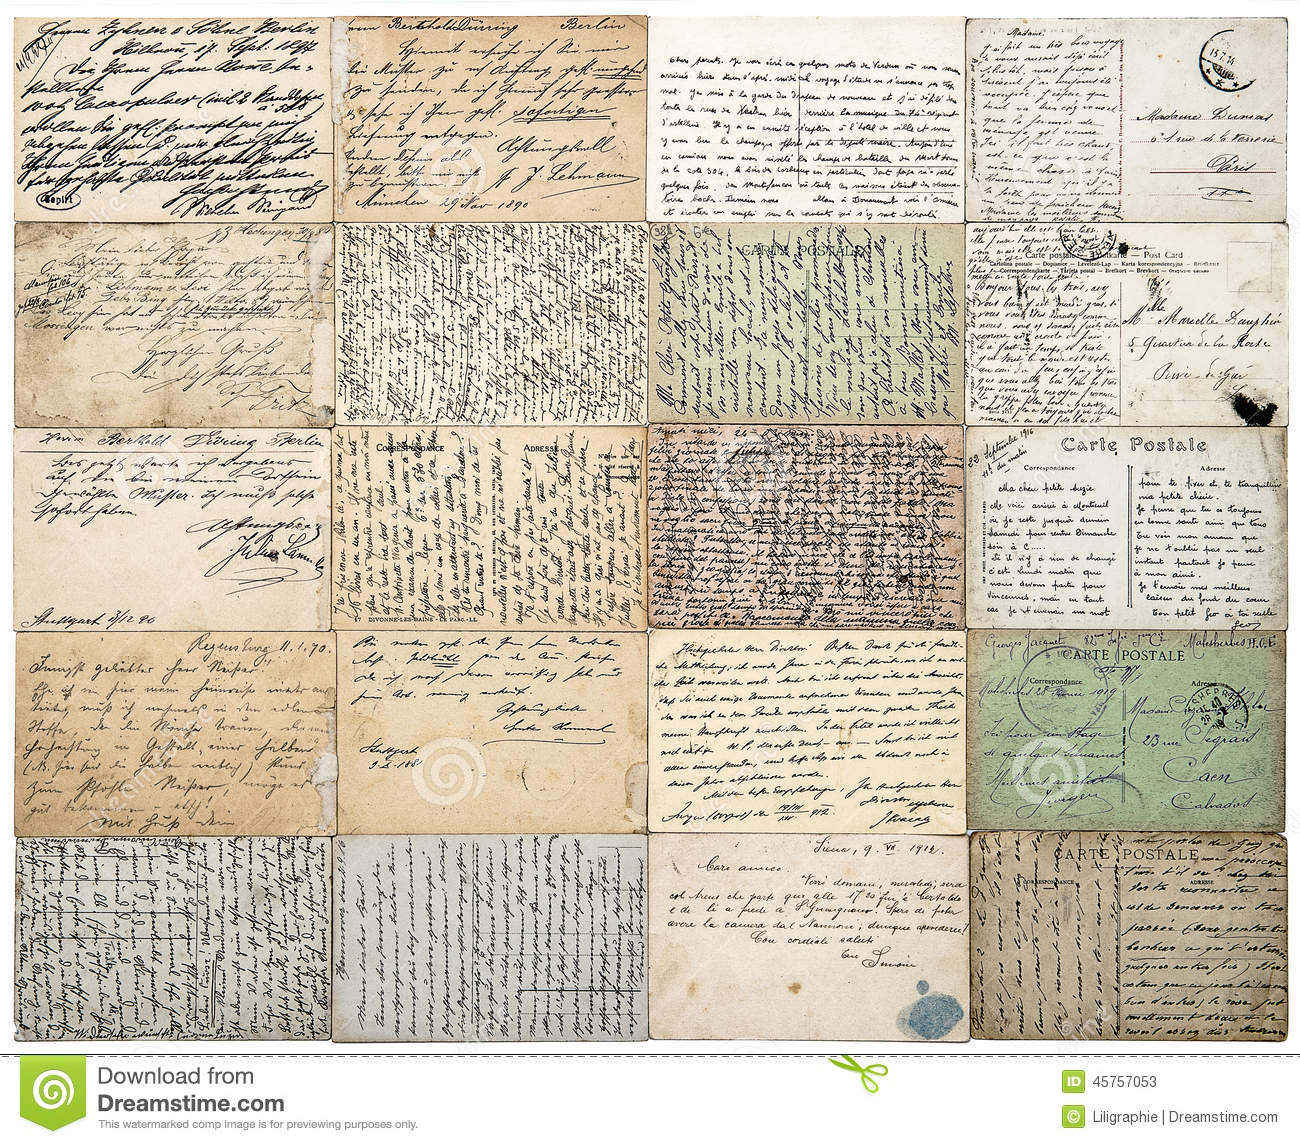 antique postcards. old handwritten undefined texts. french carte postale